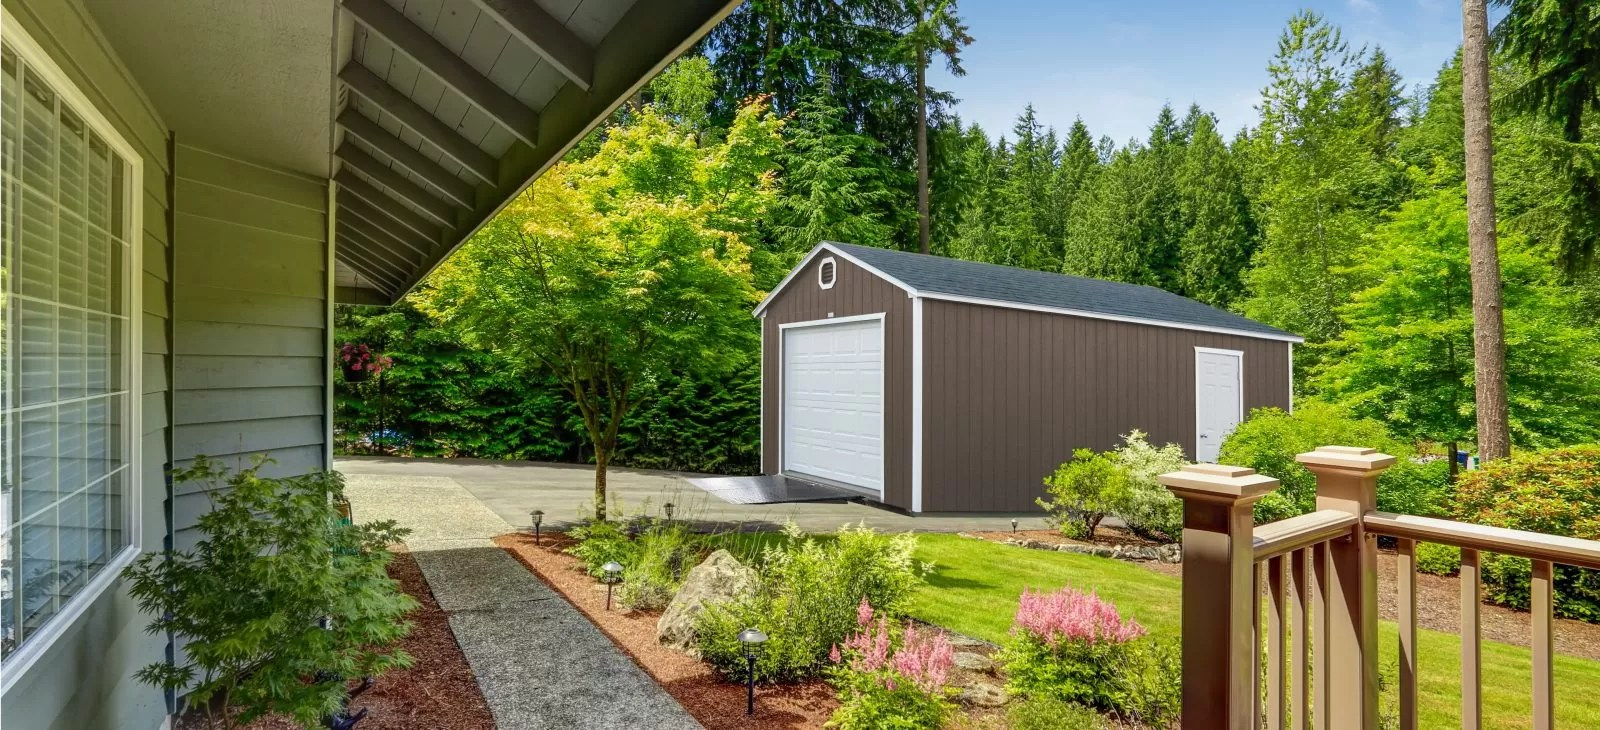 Ultimate Sheds And Storage Buildings Countryside Sheds Or